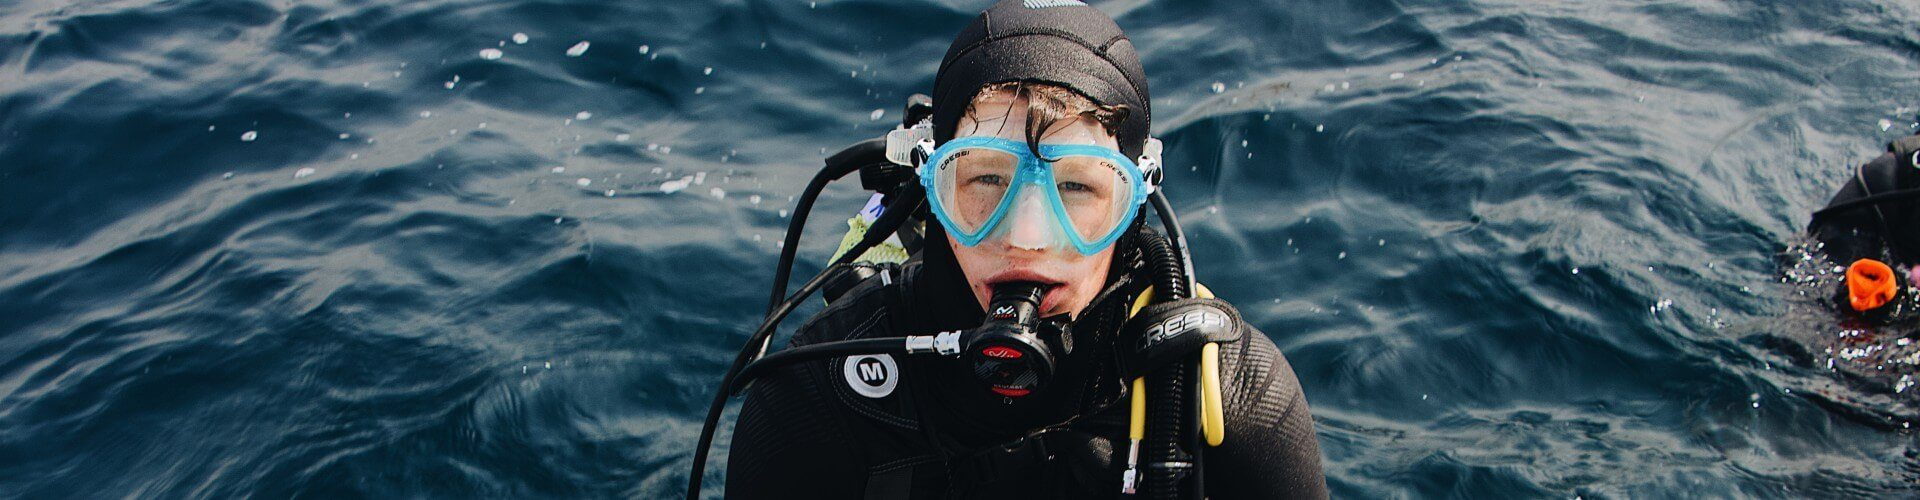 scuba diving for kids amadores beach